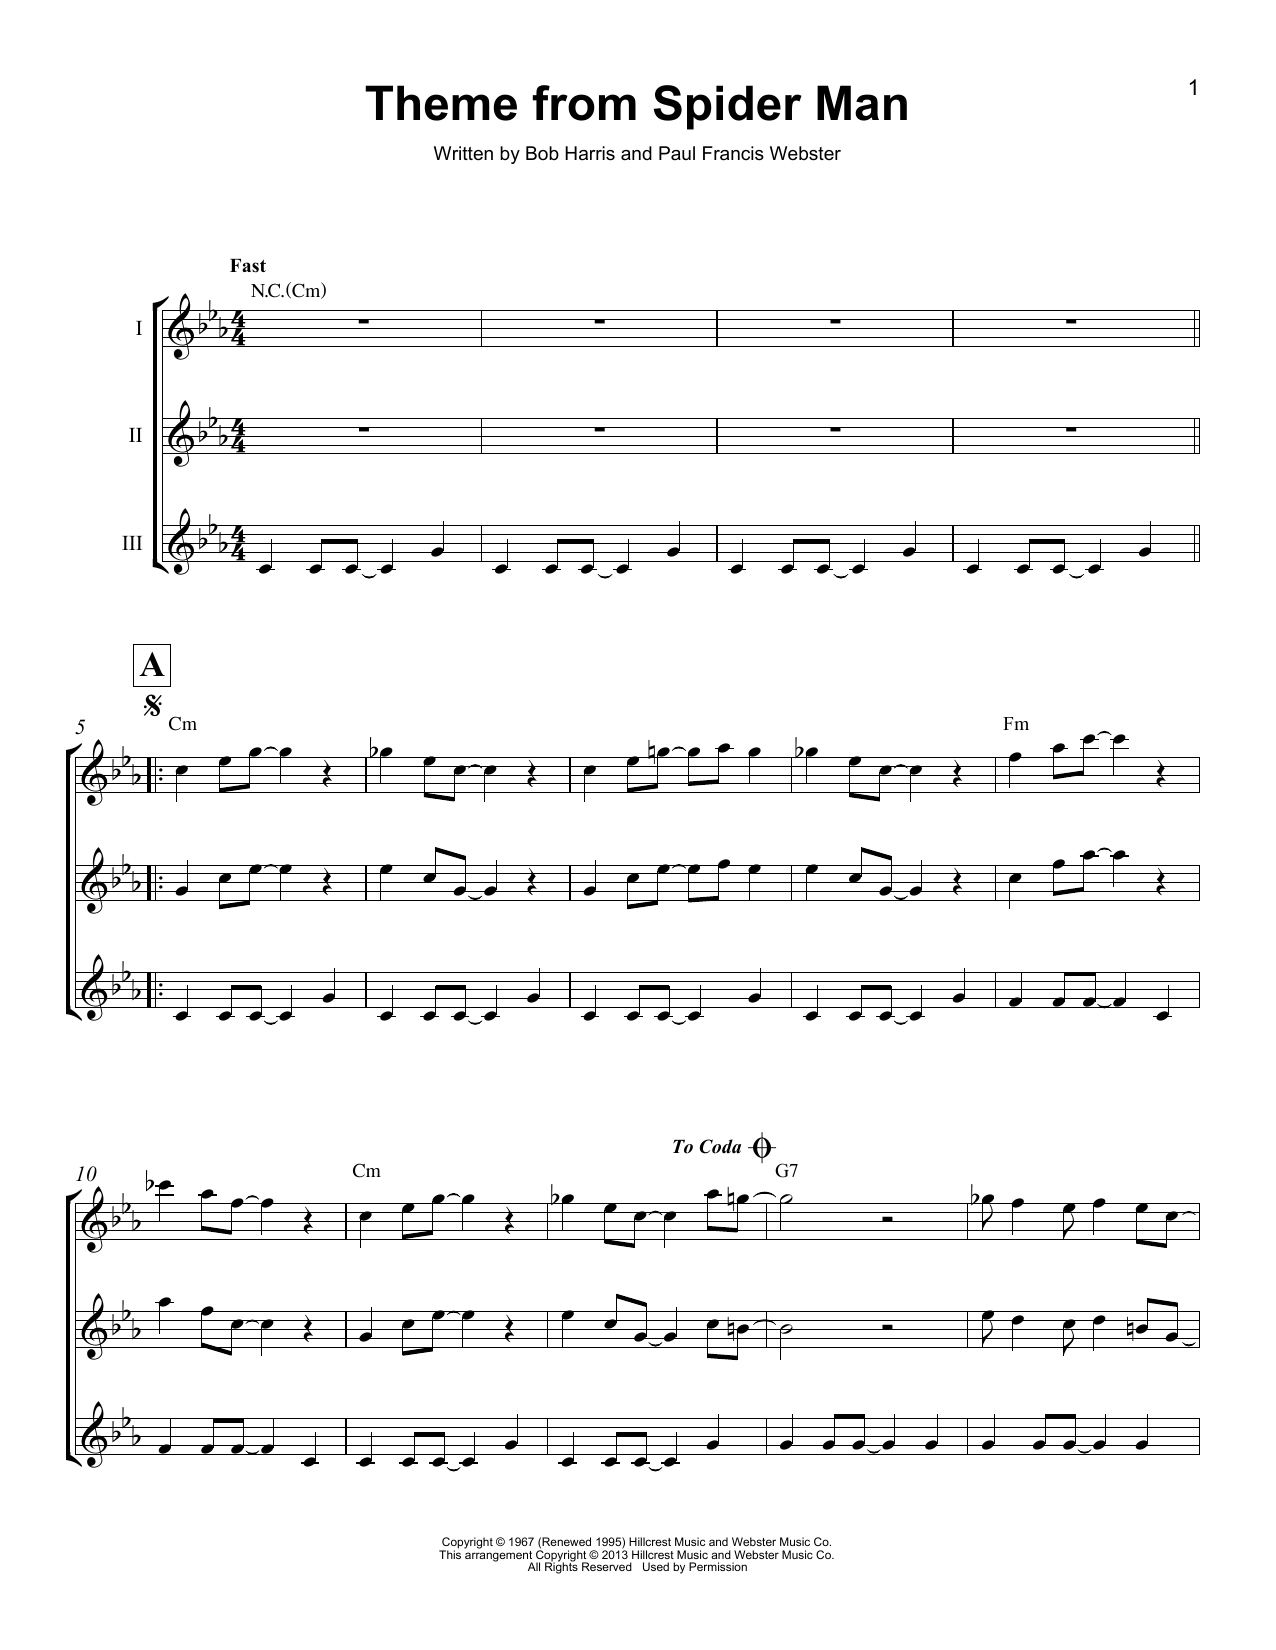 Theme From Spider Man by Bob Harris Guitar Tab (Single Guitar) Digital  Sheet Music